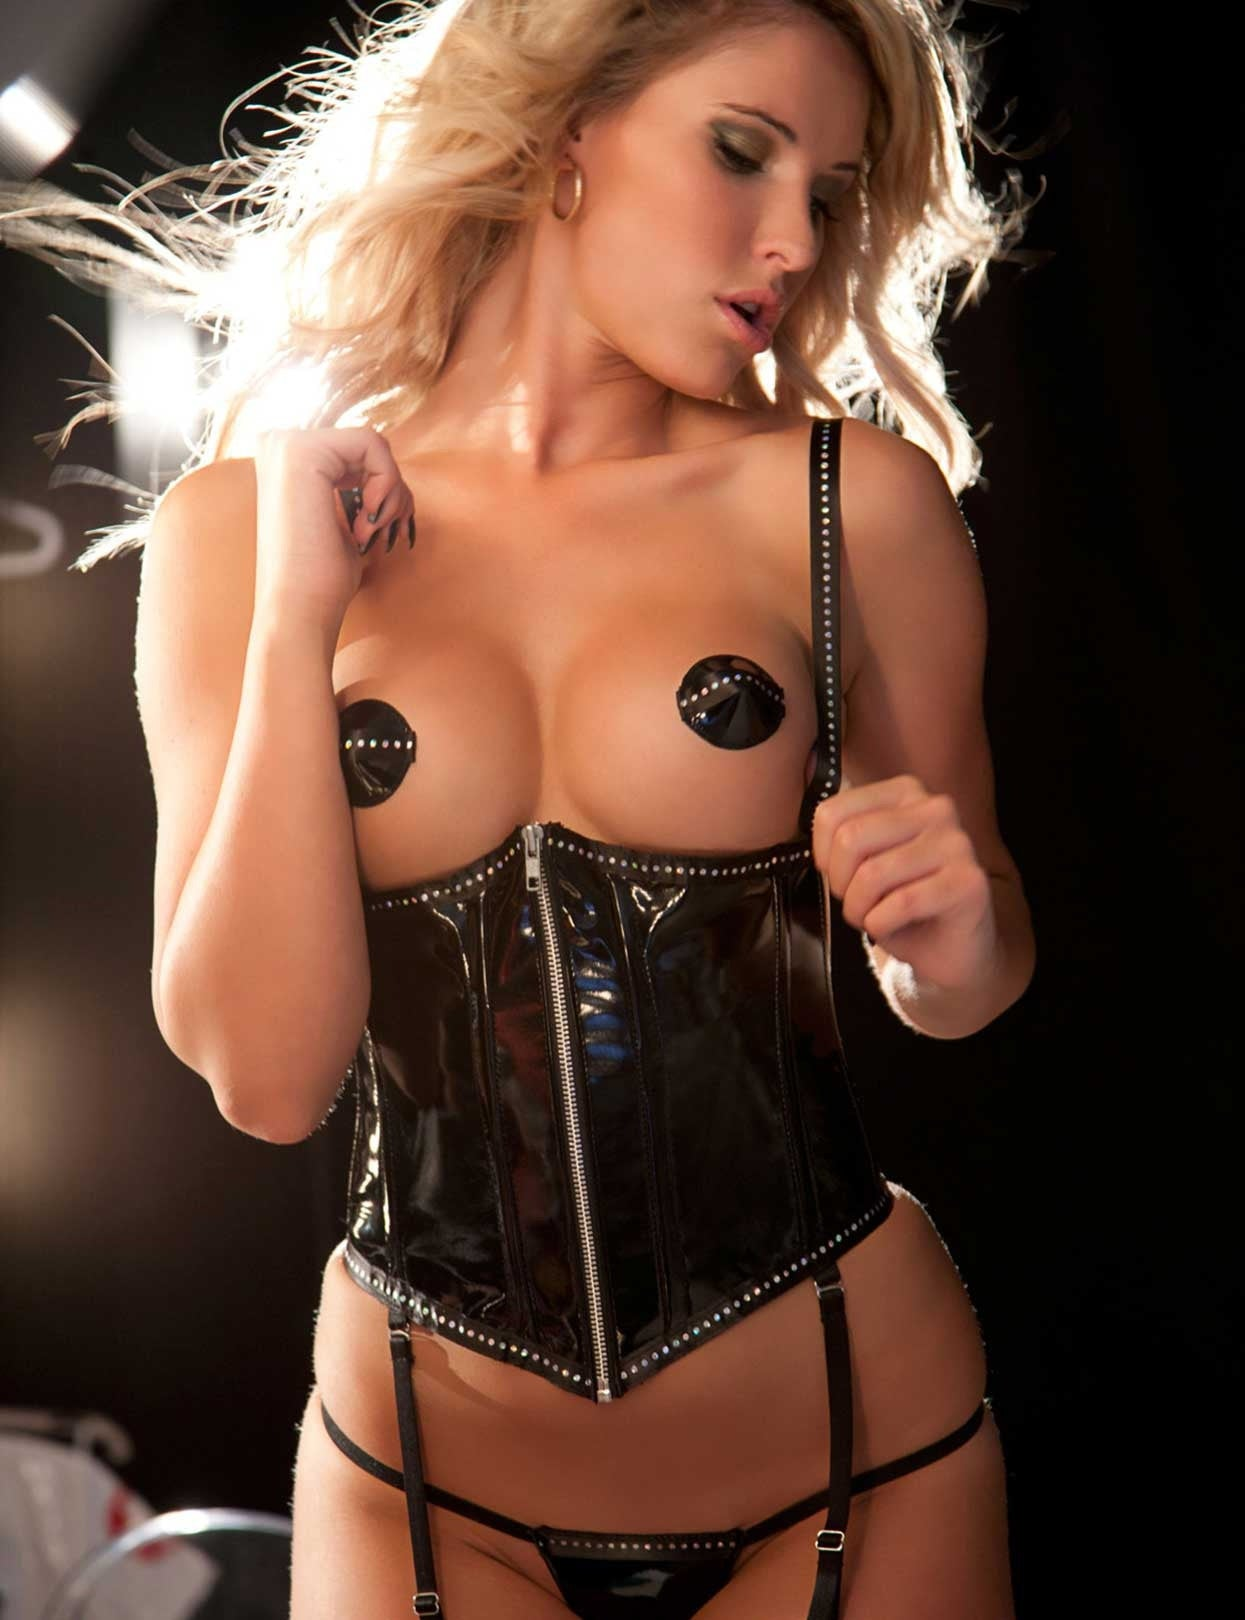 Vinyl and Rhinestone Cupless Corset Set - just damn sexy  - 1